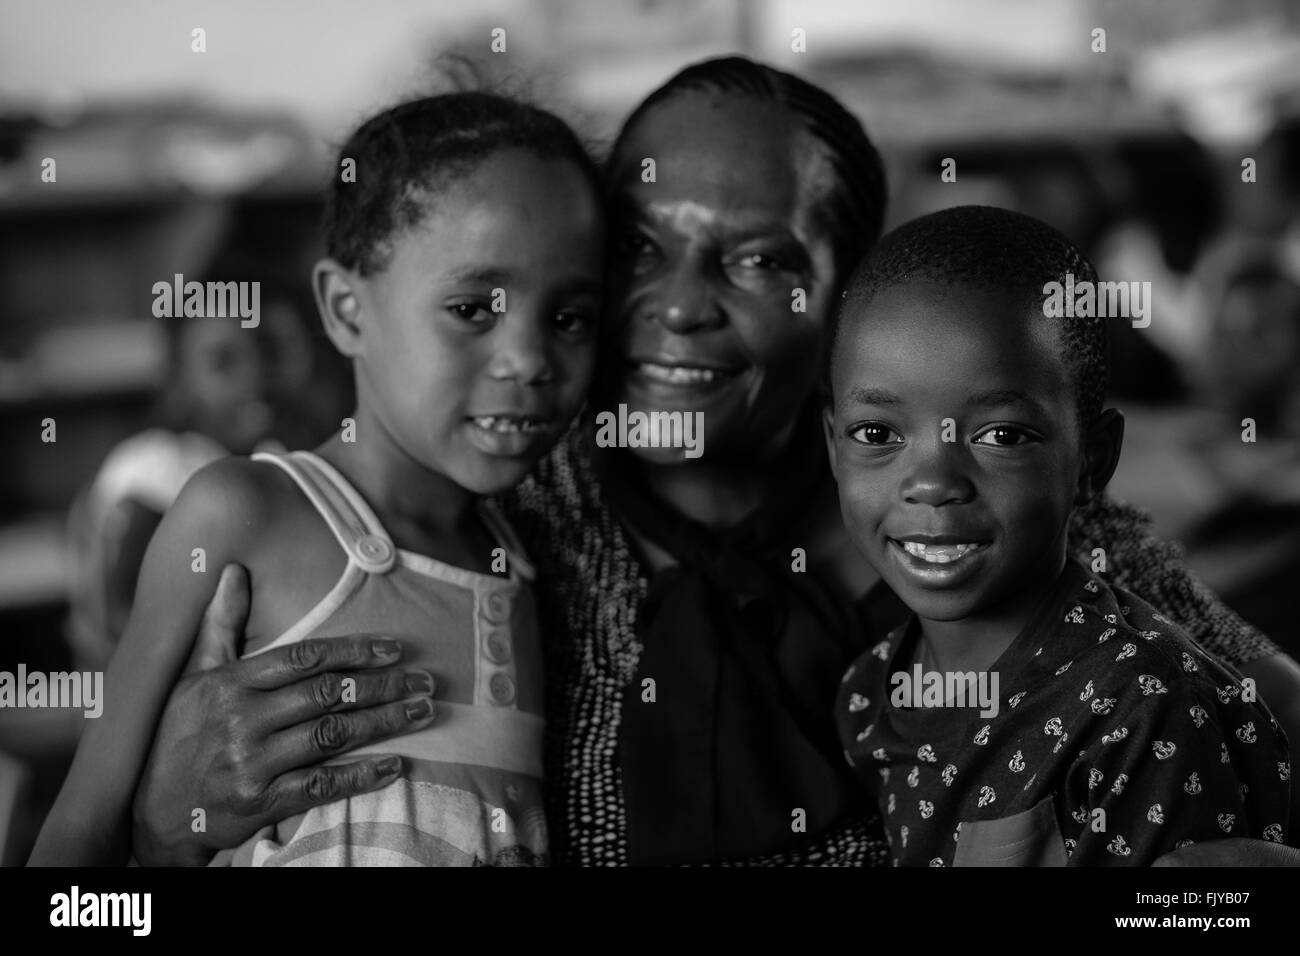 Johannesburg, Gauteng, South Africa. 27th Nov, 2015. 20 years after democracy most black children in South Africa - Stock Image